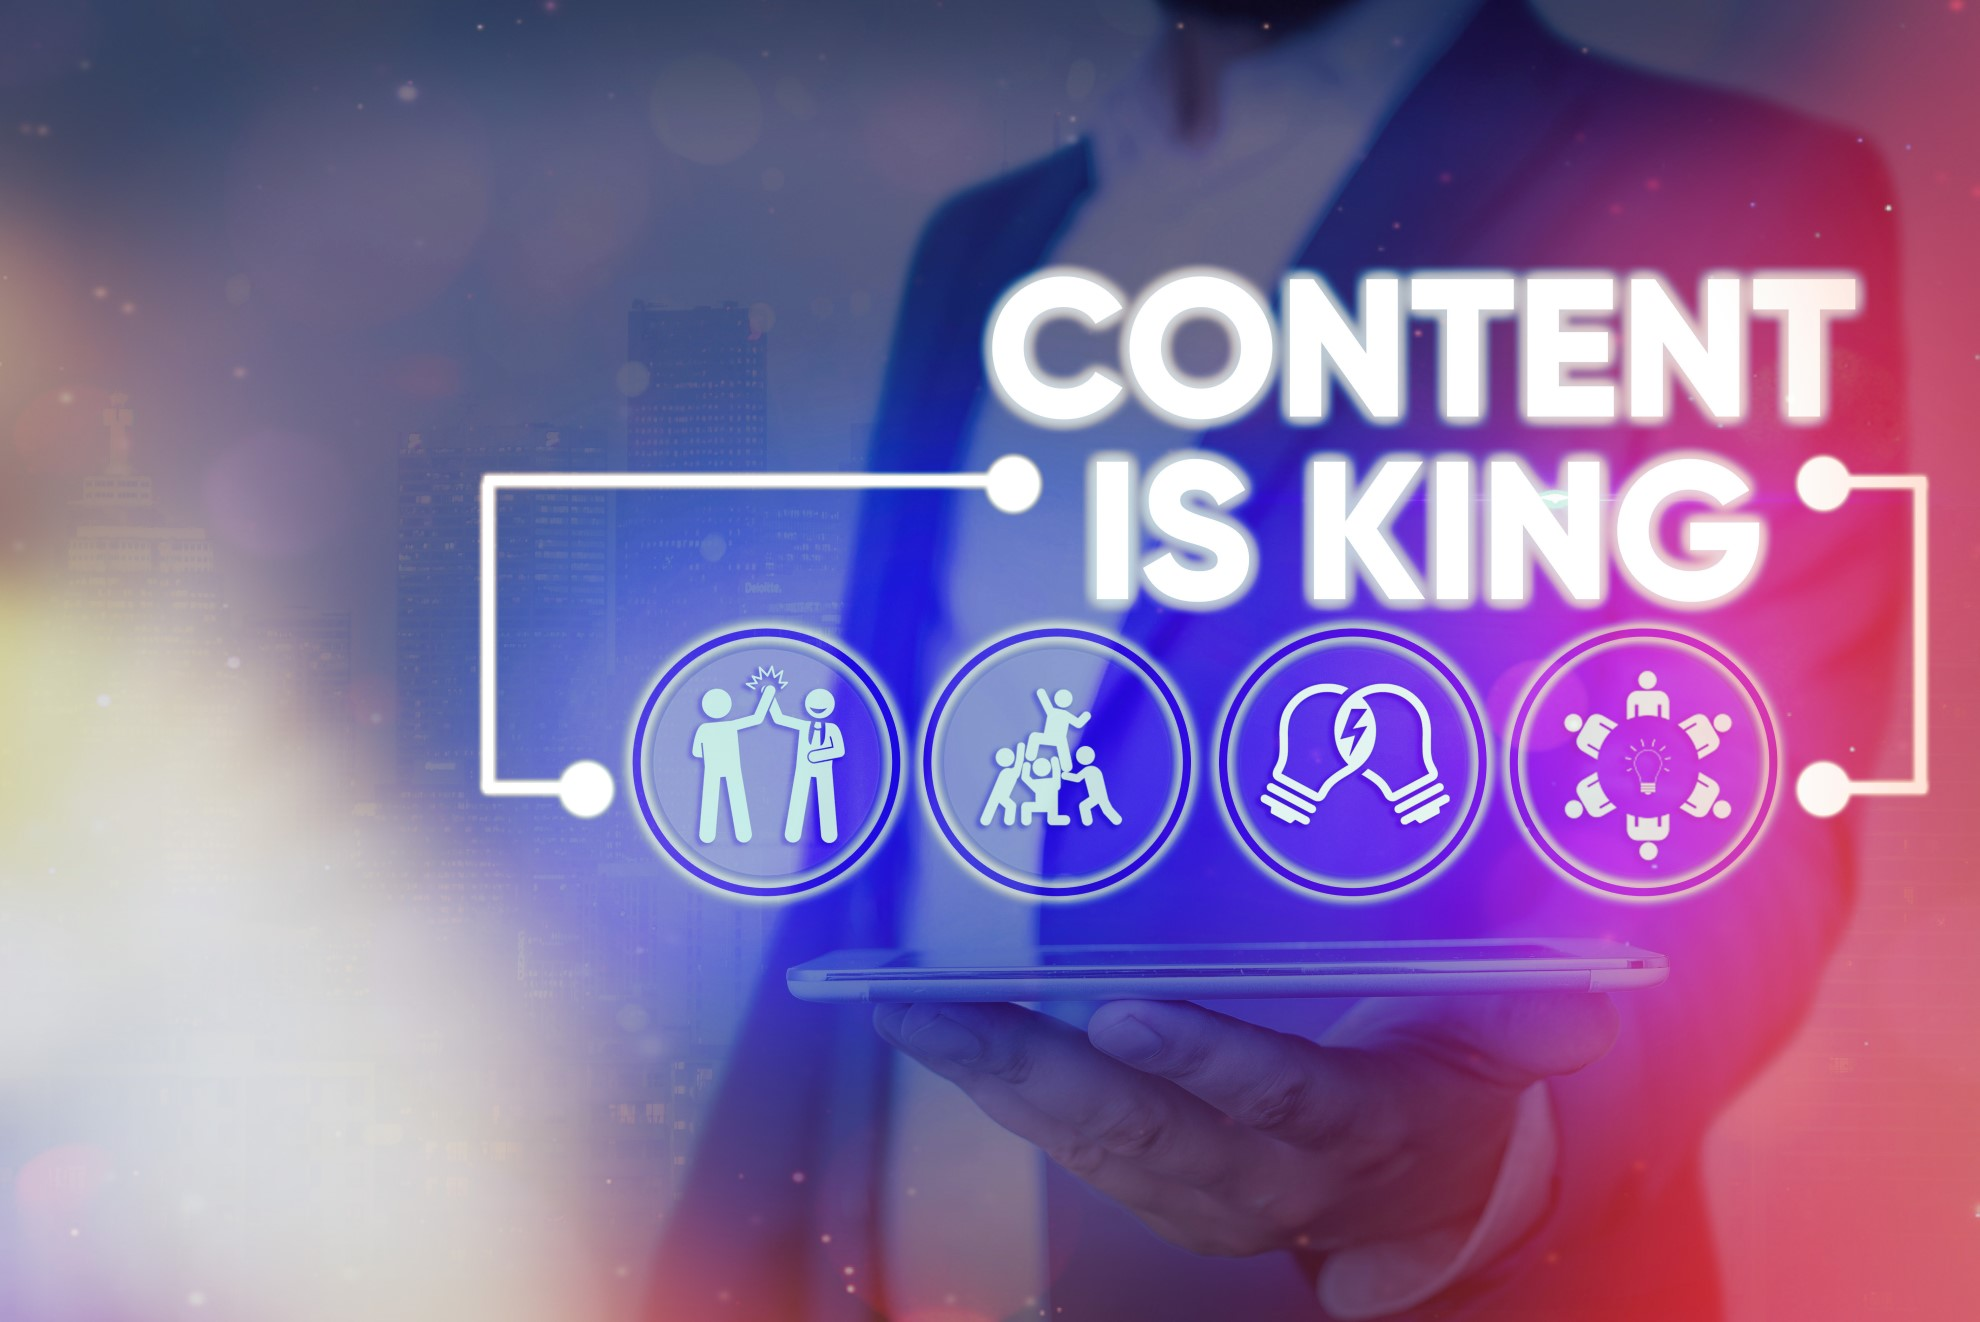 Ali Pourvasei, of LAD Solutions, was Recently Interviewed along with other SEO experts About His Thoughts on How to Produce Content that Creates Engagement and Attracts Backlinks.